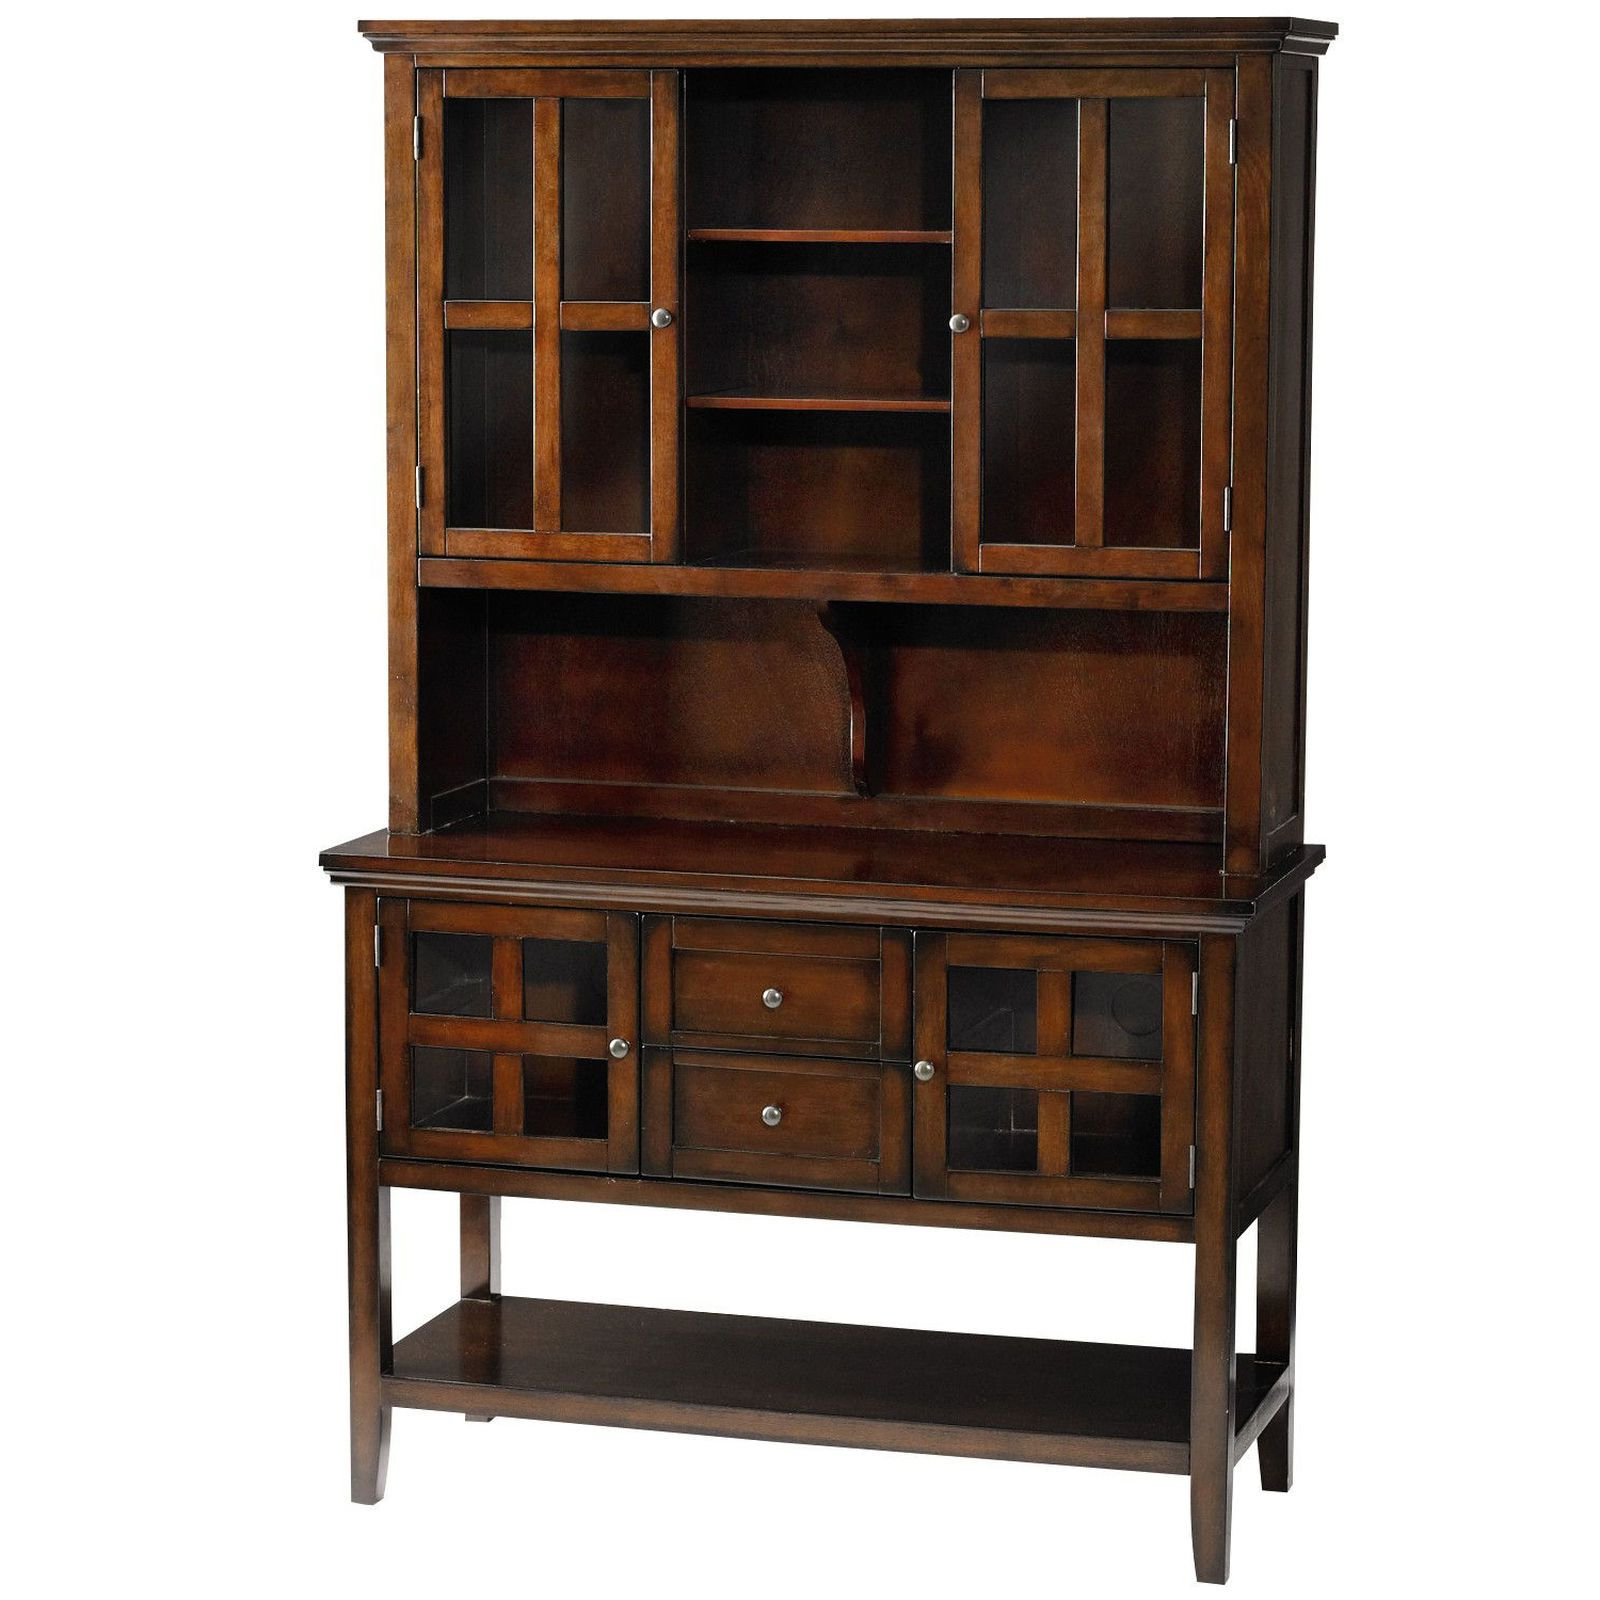 Wood Accent Sideboards Buffet Serving Storage Cabinet With 4 Framed Glass Doors Regarding Fashionable Ronan Tobacco Brown Small Buffet Table In (View 3 of 20)